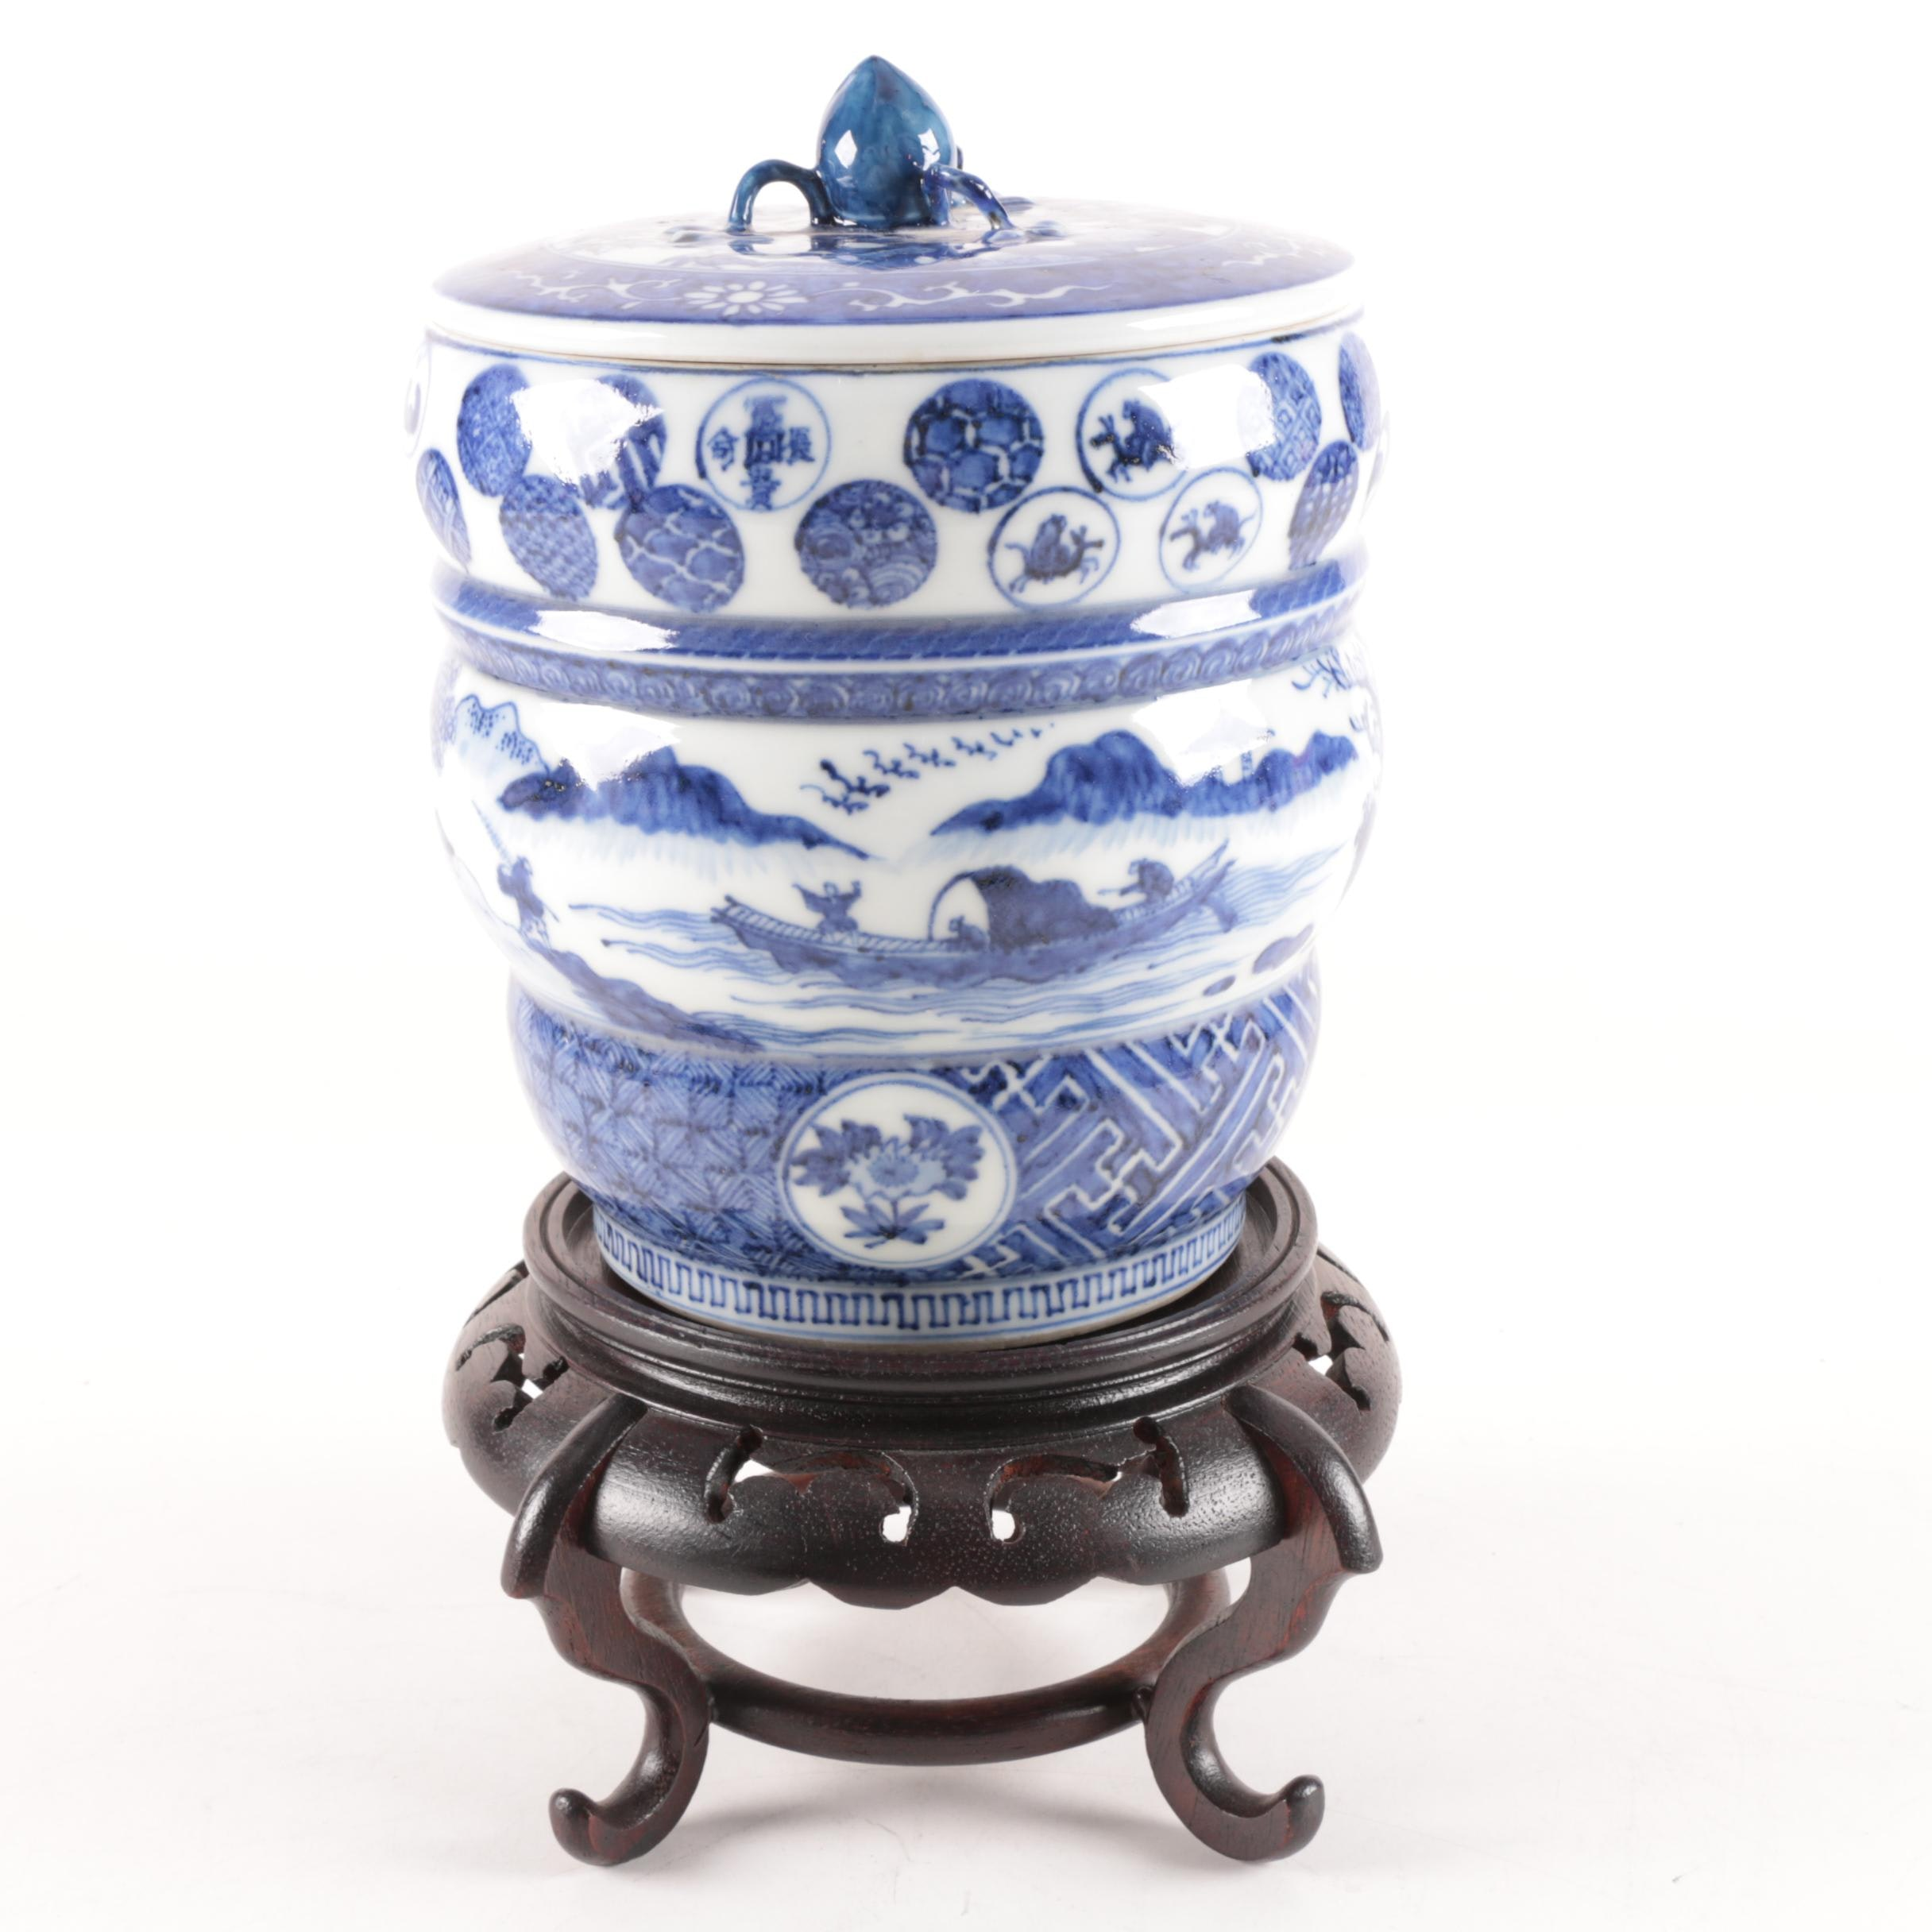 Ceramic Jar with Wooden Stand